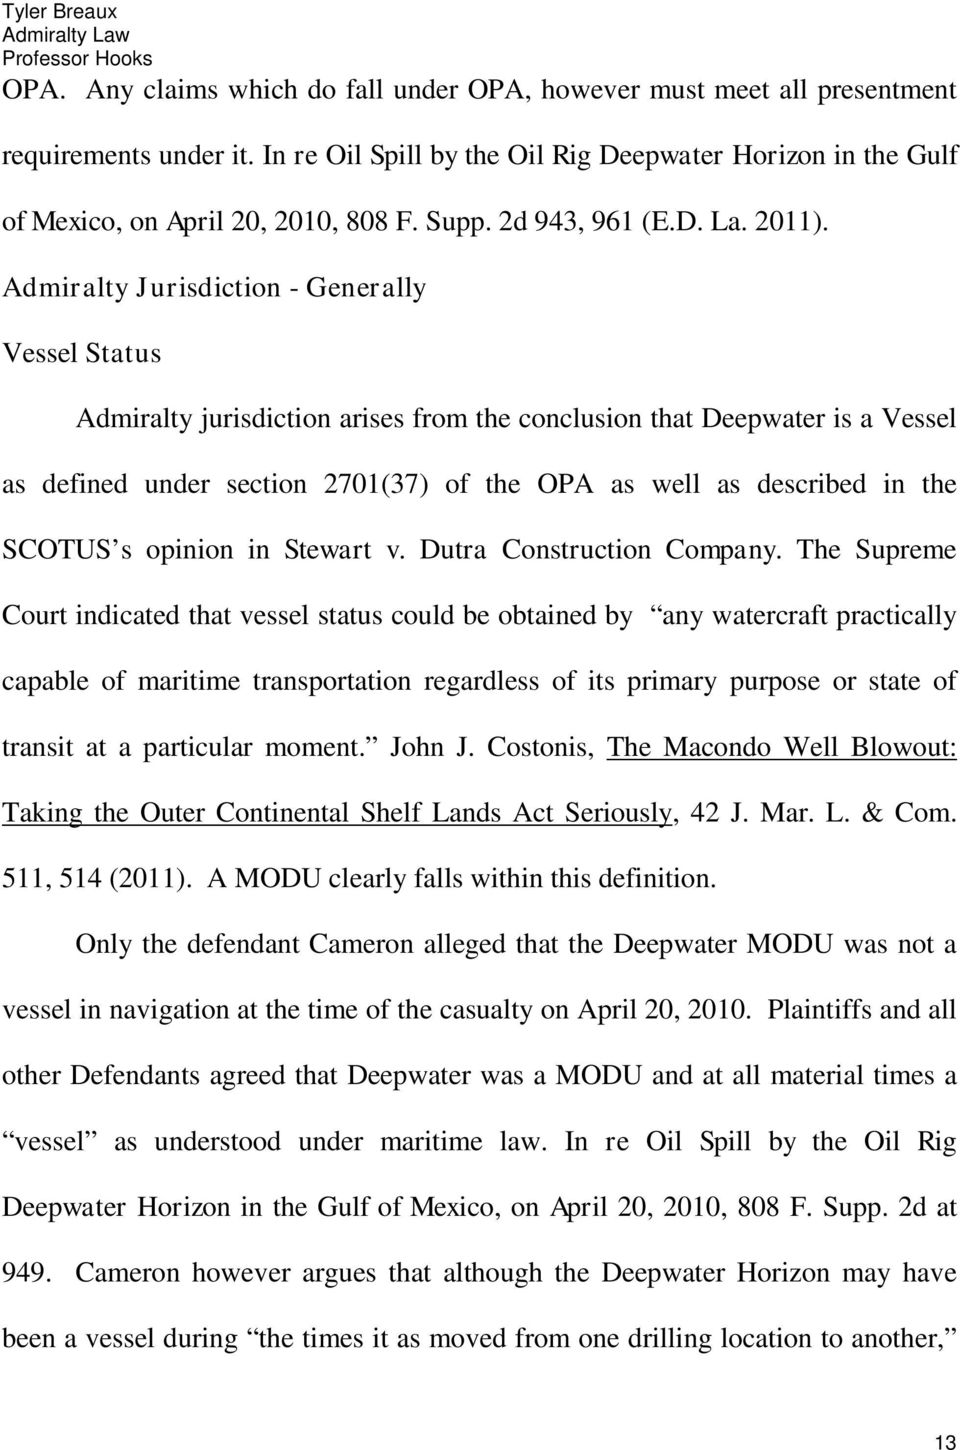 Admiralty Jurisdiction - Generally Vessel Status Admiralty jurisdiction arises from the conclusion that Deepwater is a Vessel as defined under section 2701(37) of the OPA as well as described in the